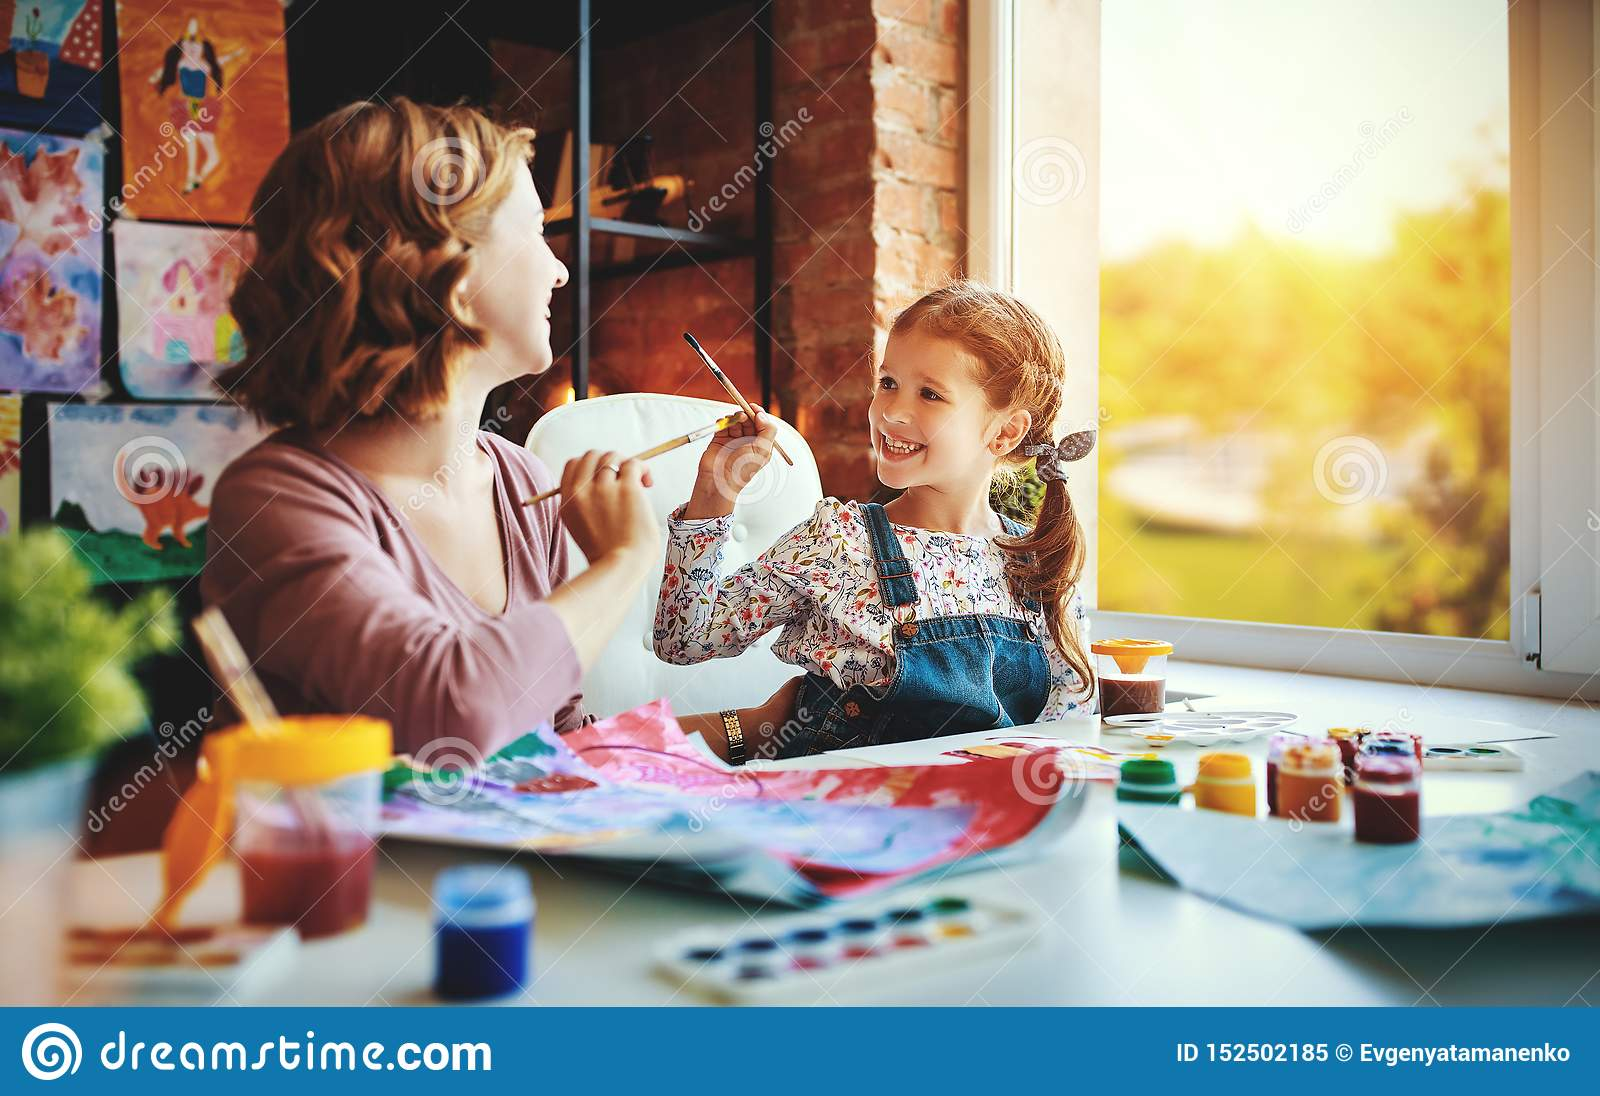 Mother and child daughter painting draws in creativity in kindergarten